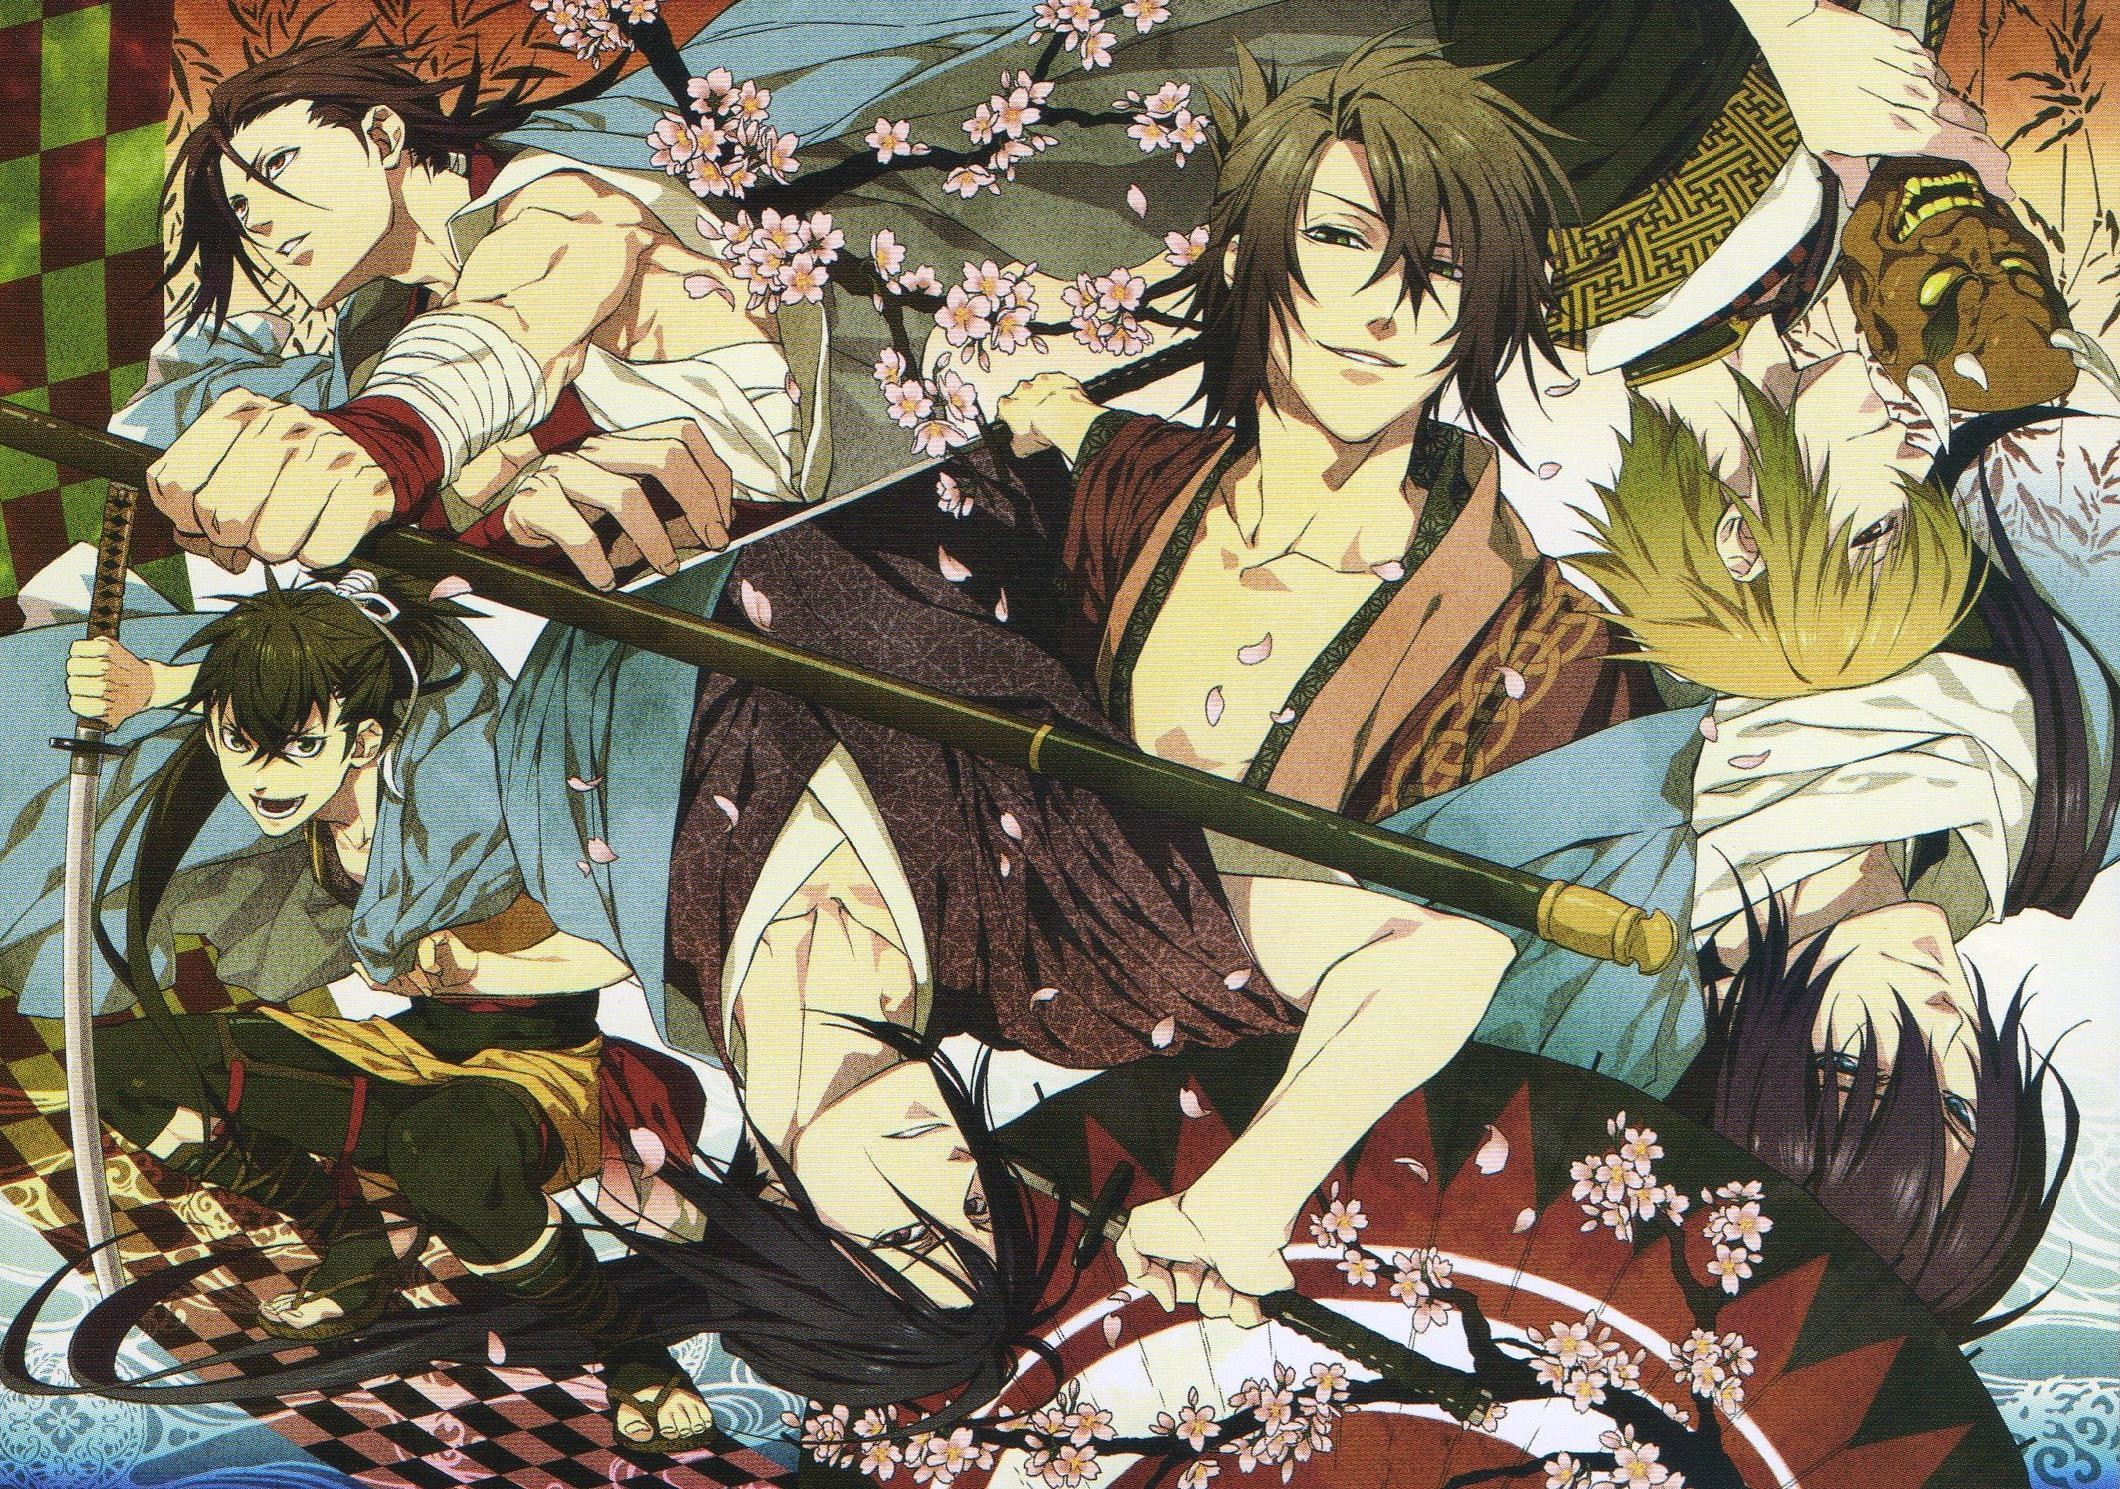 Res: 2120x1489, Hakuouki Shinsengumi Kitan Wallpapers